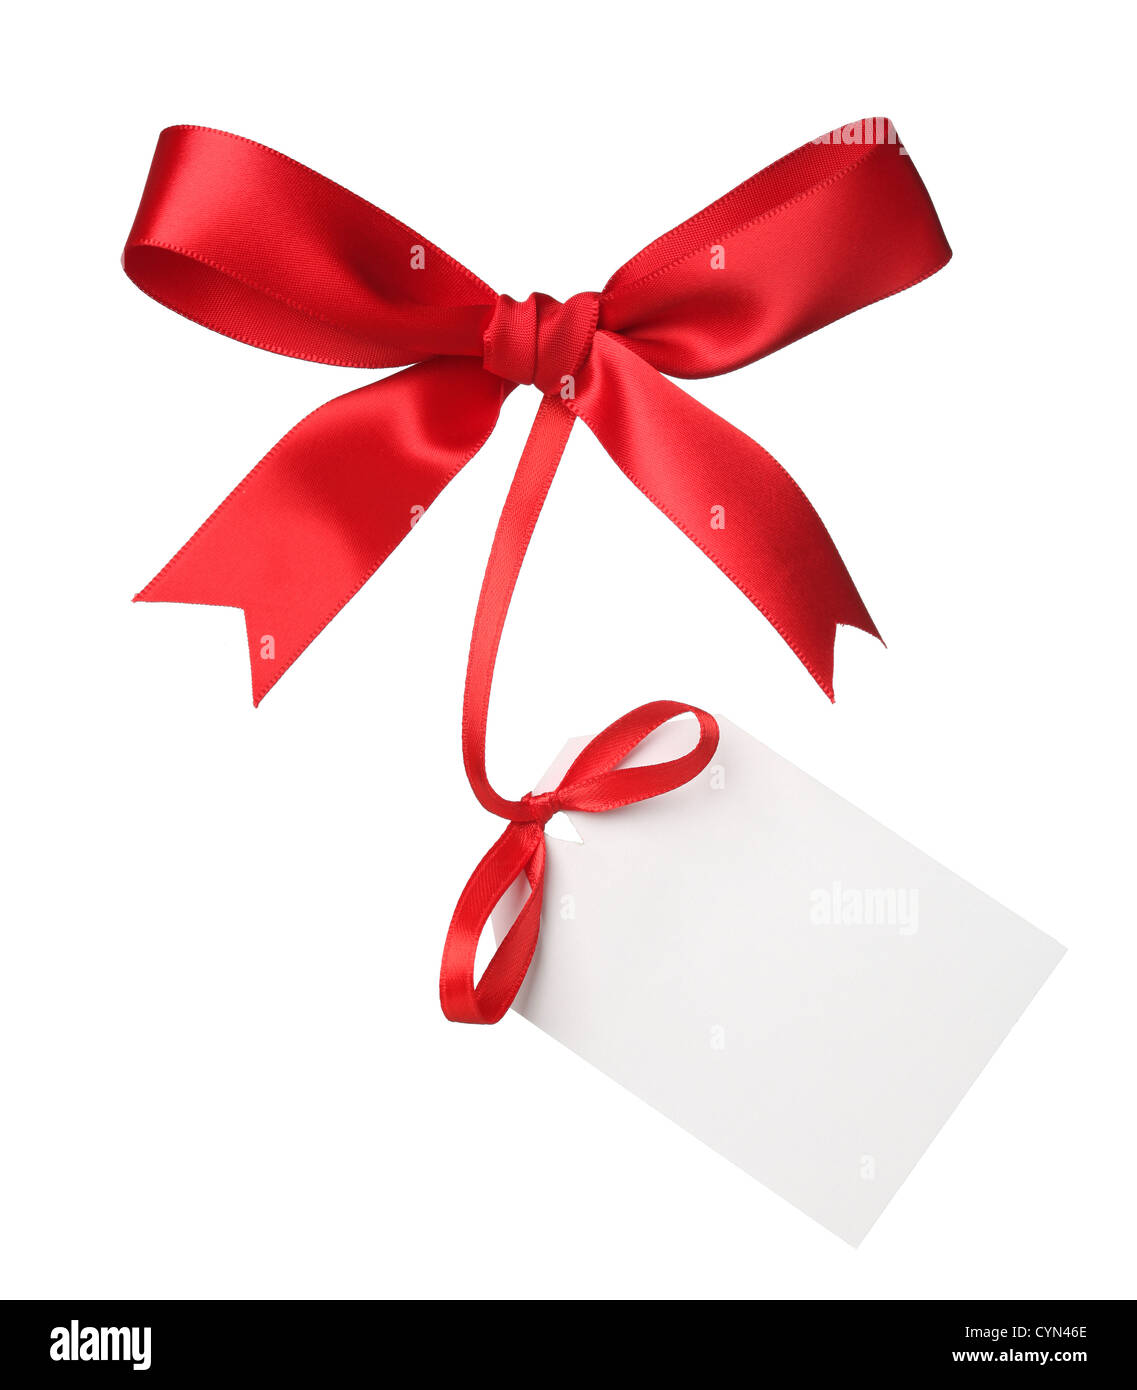 Red bow with blank label - Stock Image